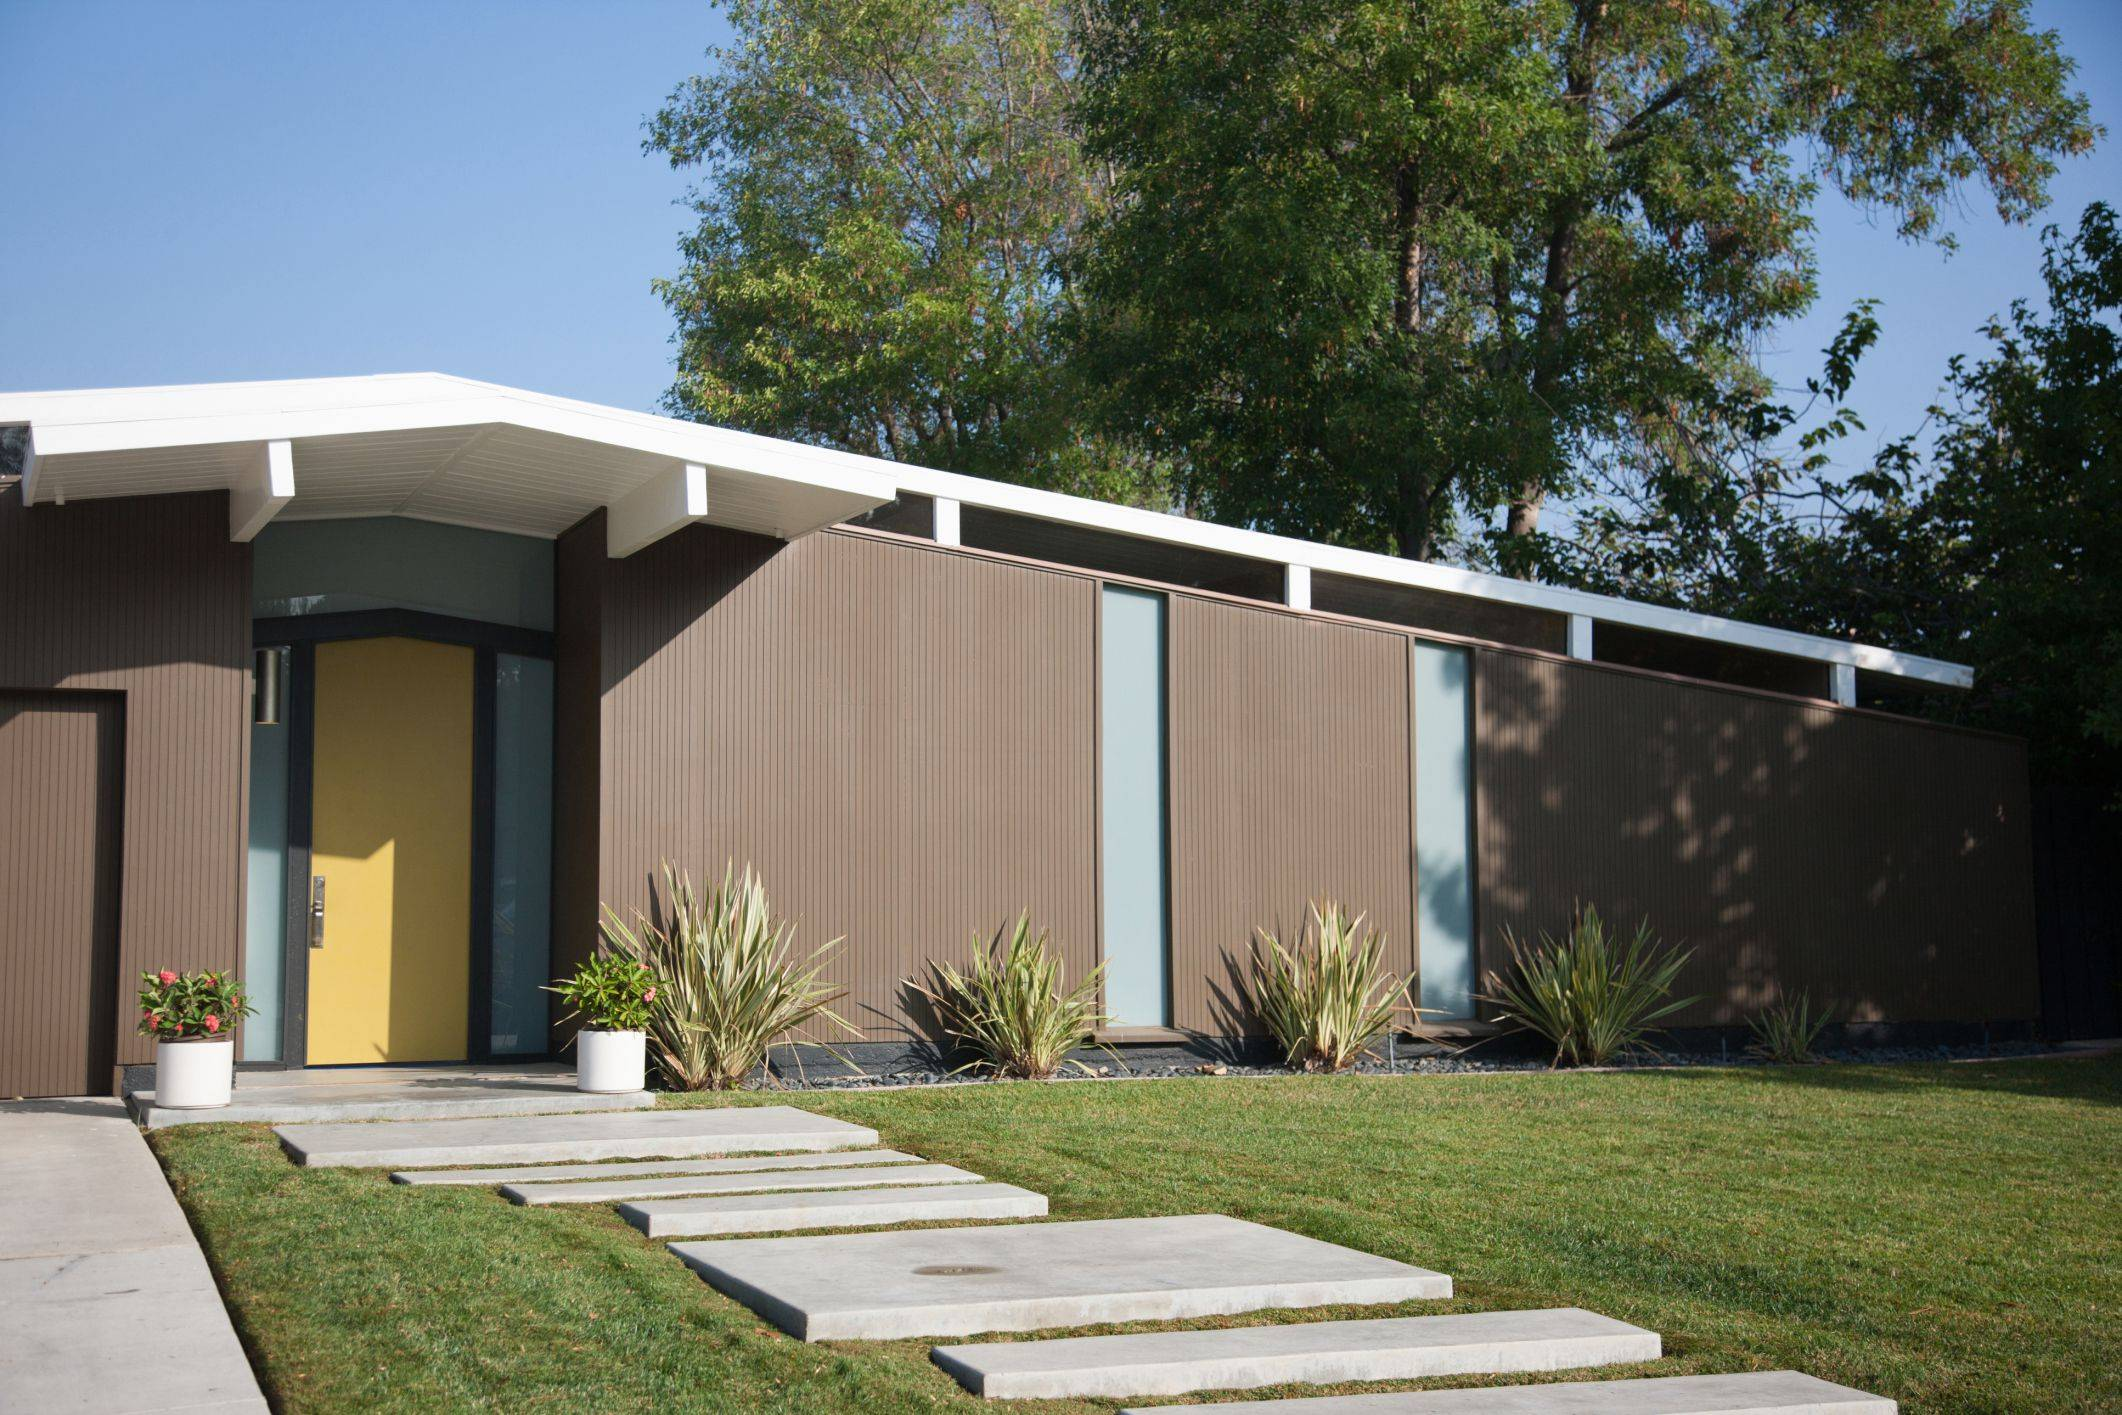 Mid Century Modern House with Concrete Walkway 56a4a1333df78cf f4